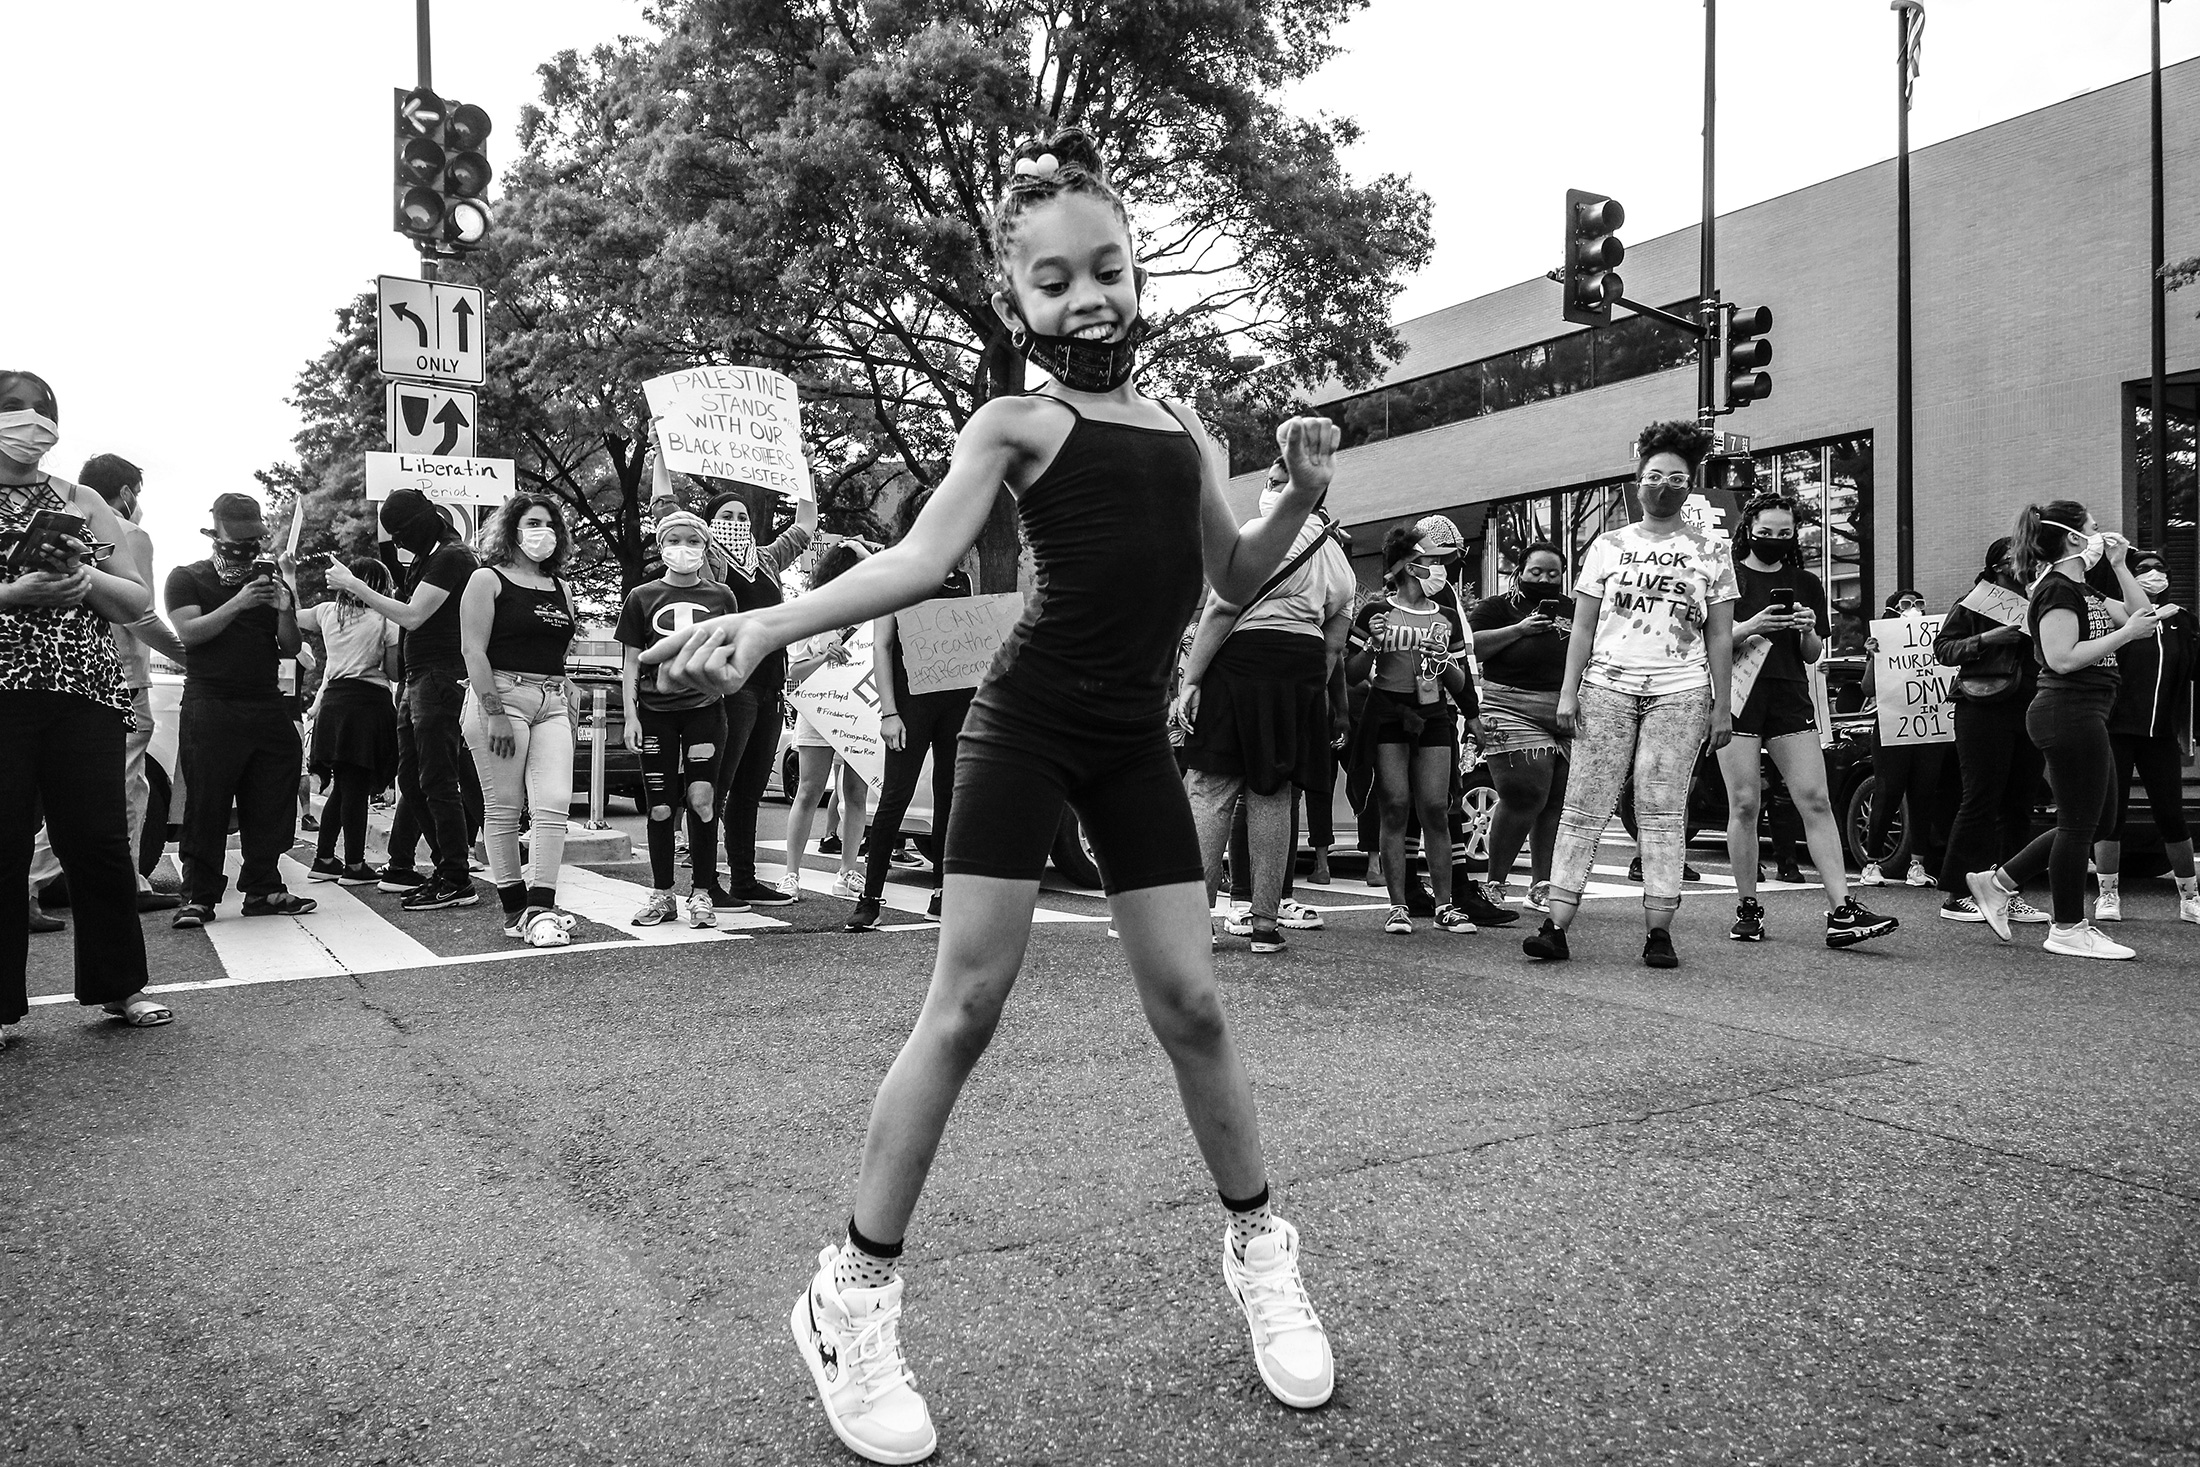 10 year old Sashay dancing for protesters at the Black Lives Matter march for George Floyd on May 30 in Washington, D.C. at The Wharf. BLM members shut down access to the wharf to bring awareness to Police Brutality. PHOTO: DEE DWYER